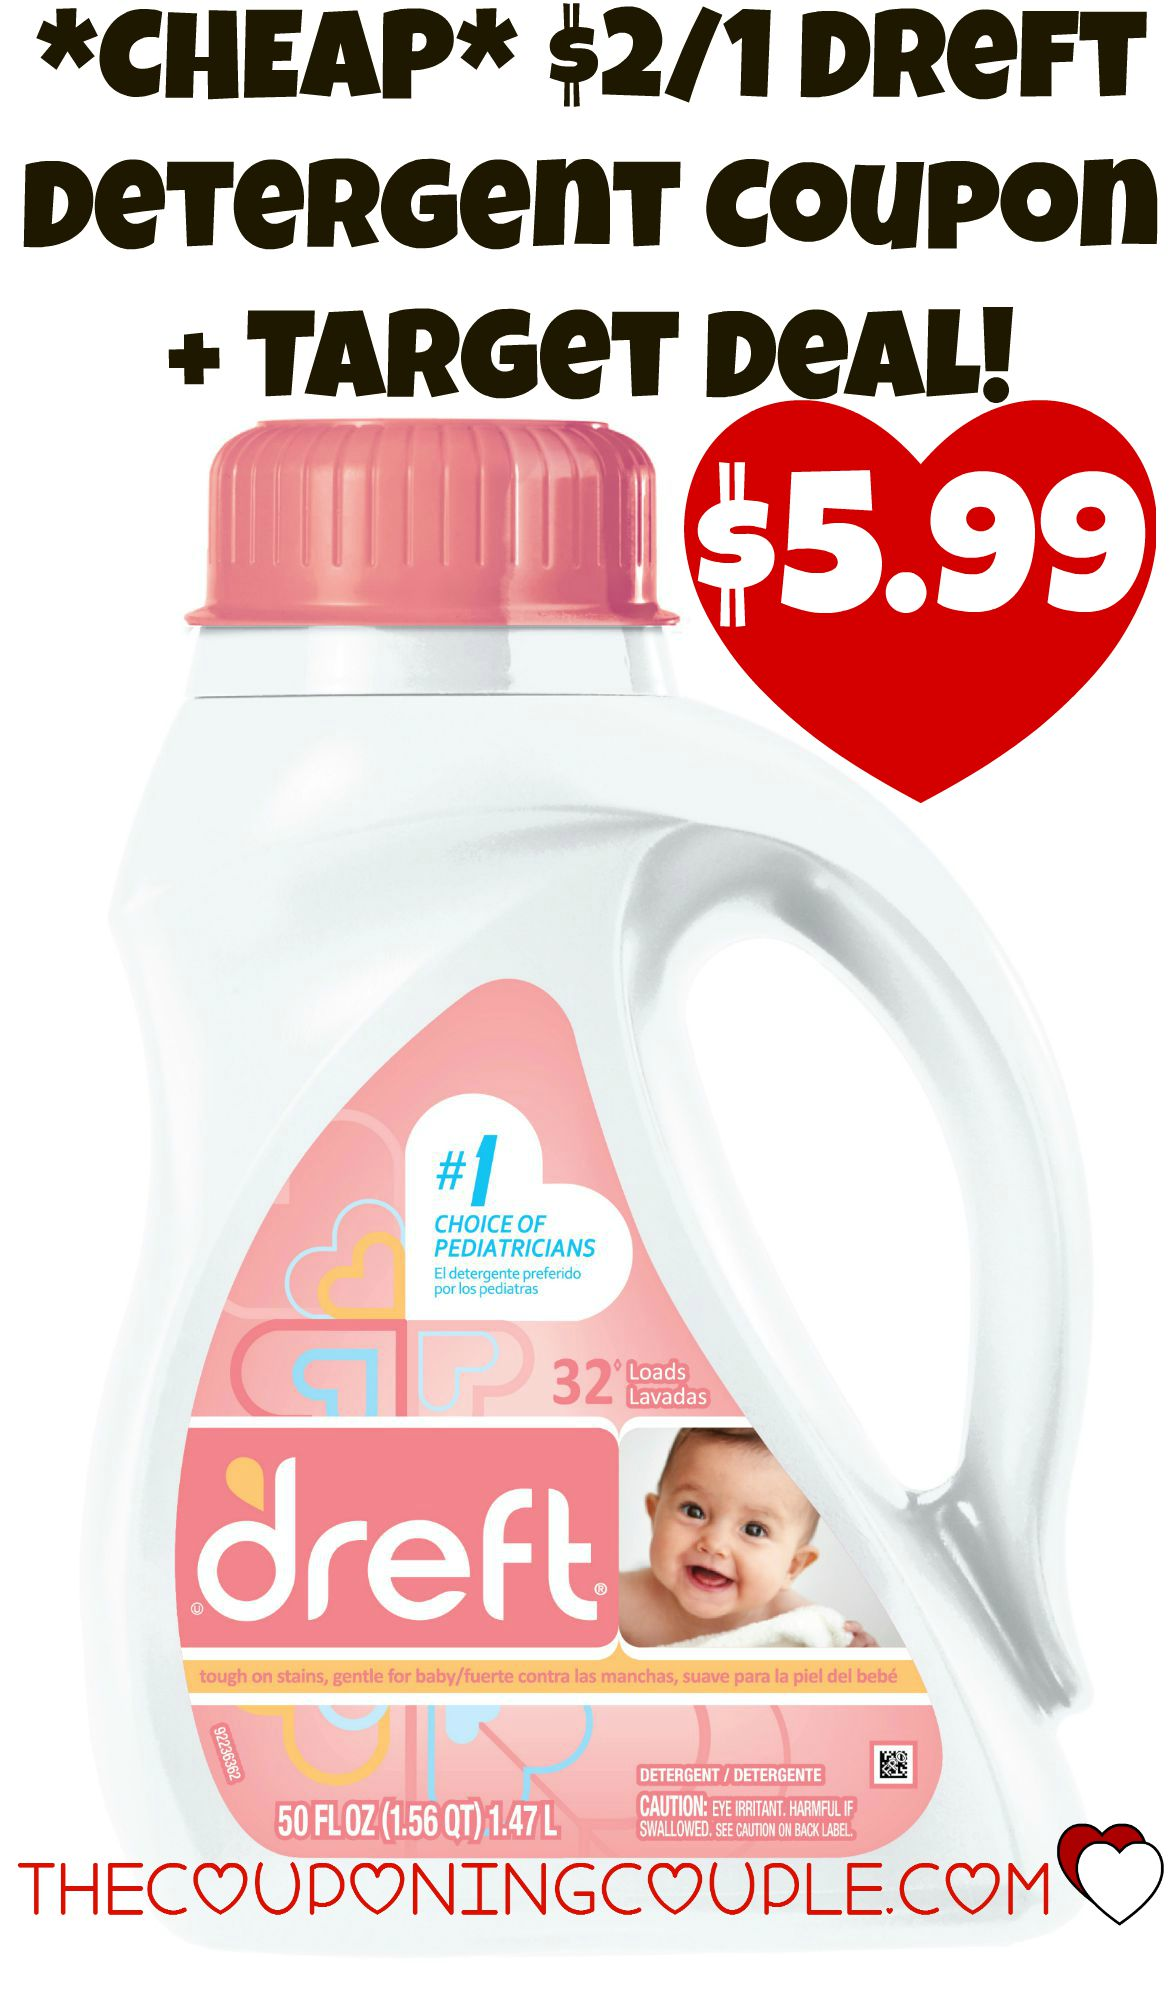 Dreft Coupons